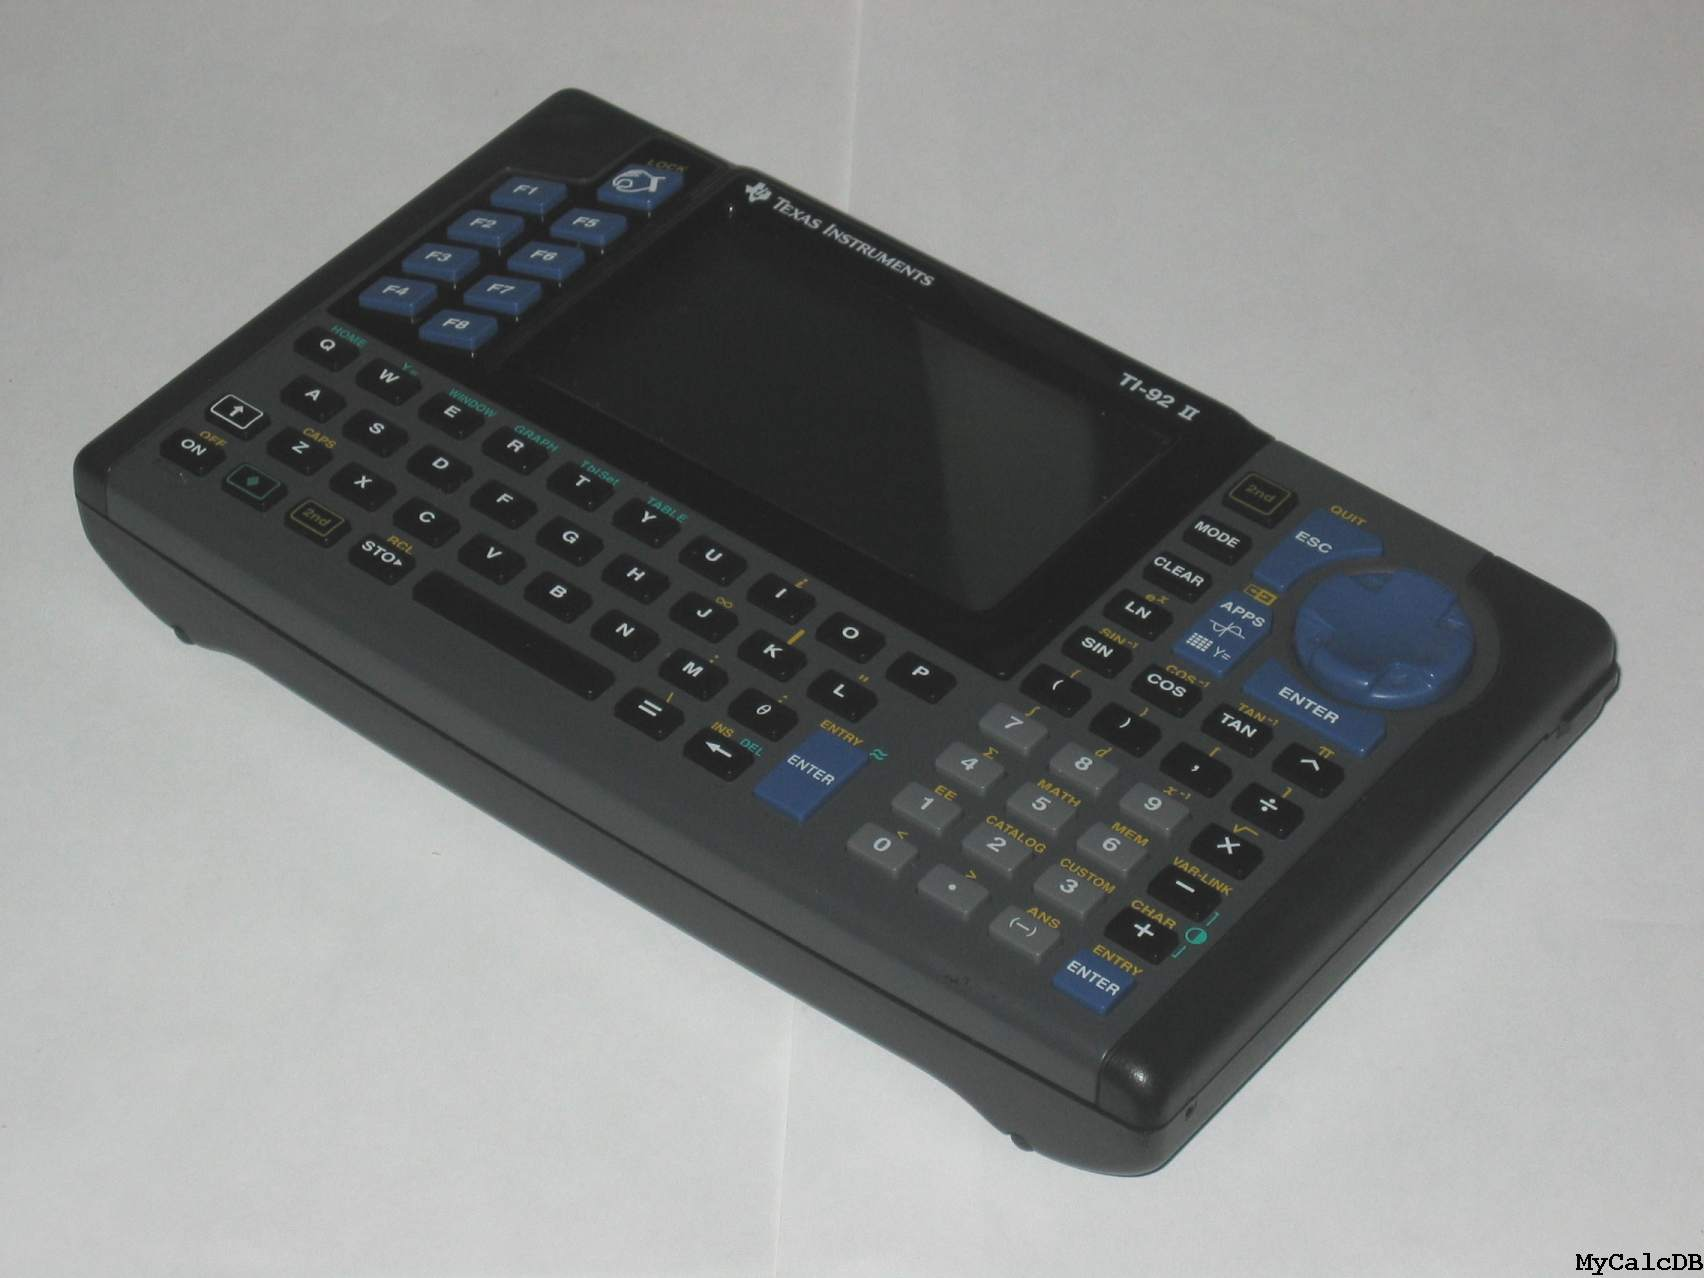 Texas Instruments TI-92 II